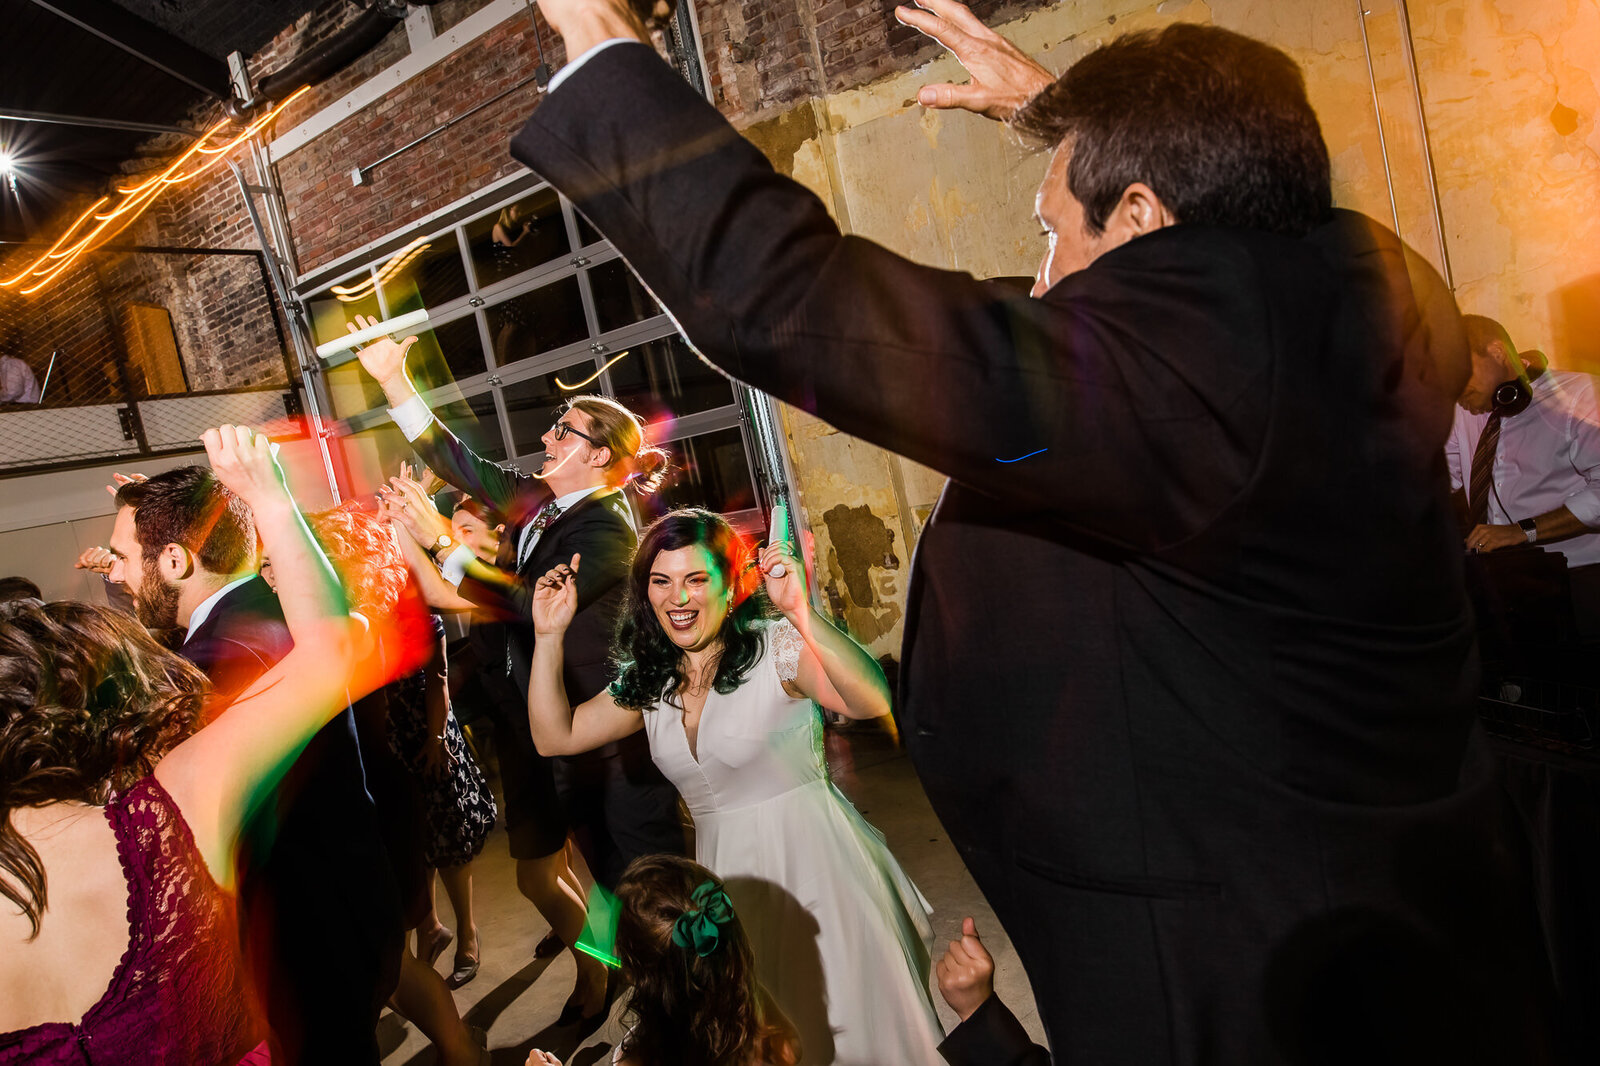 Guests dancing and having fun at a wedding reception at Wild Carrot in St. Louis